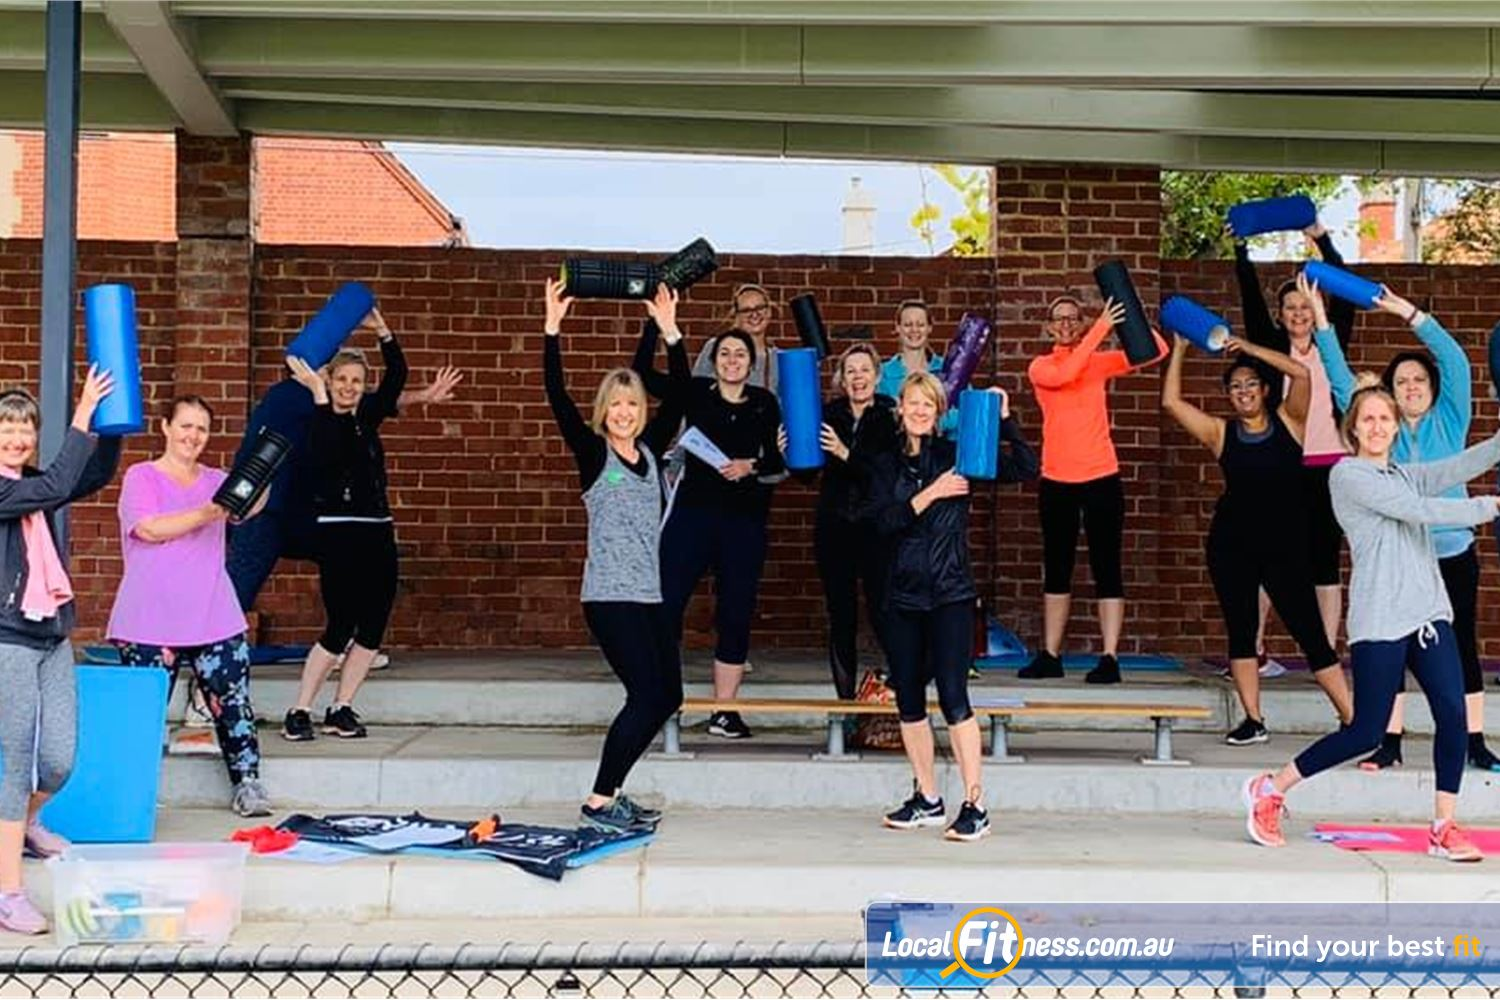 Long Live You Near St Kilda Long Live You provides outdoor personal training in Prahran .